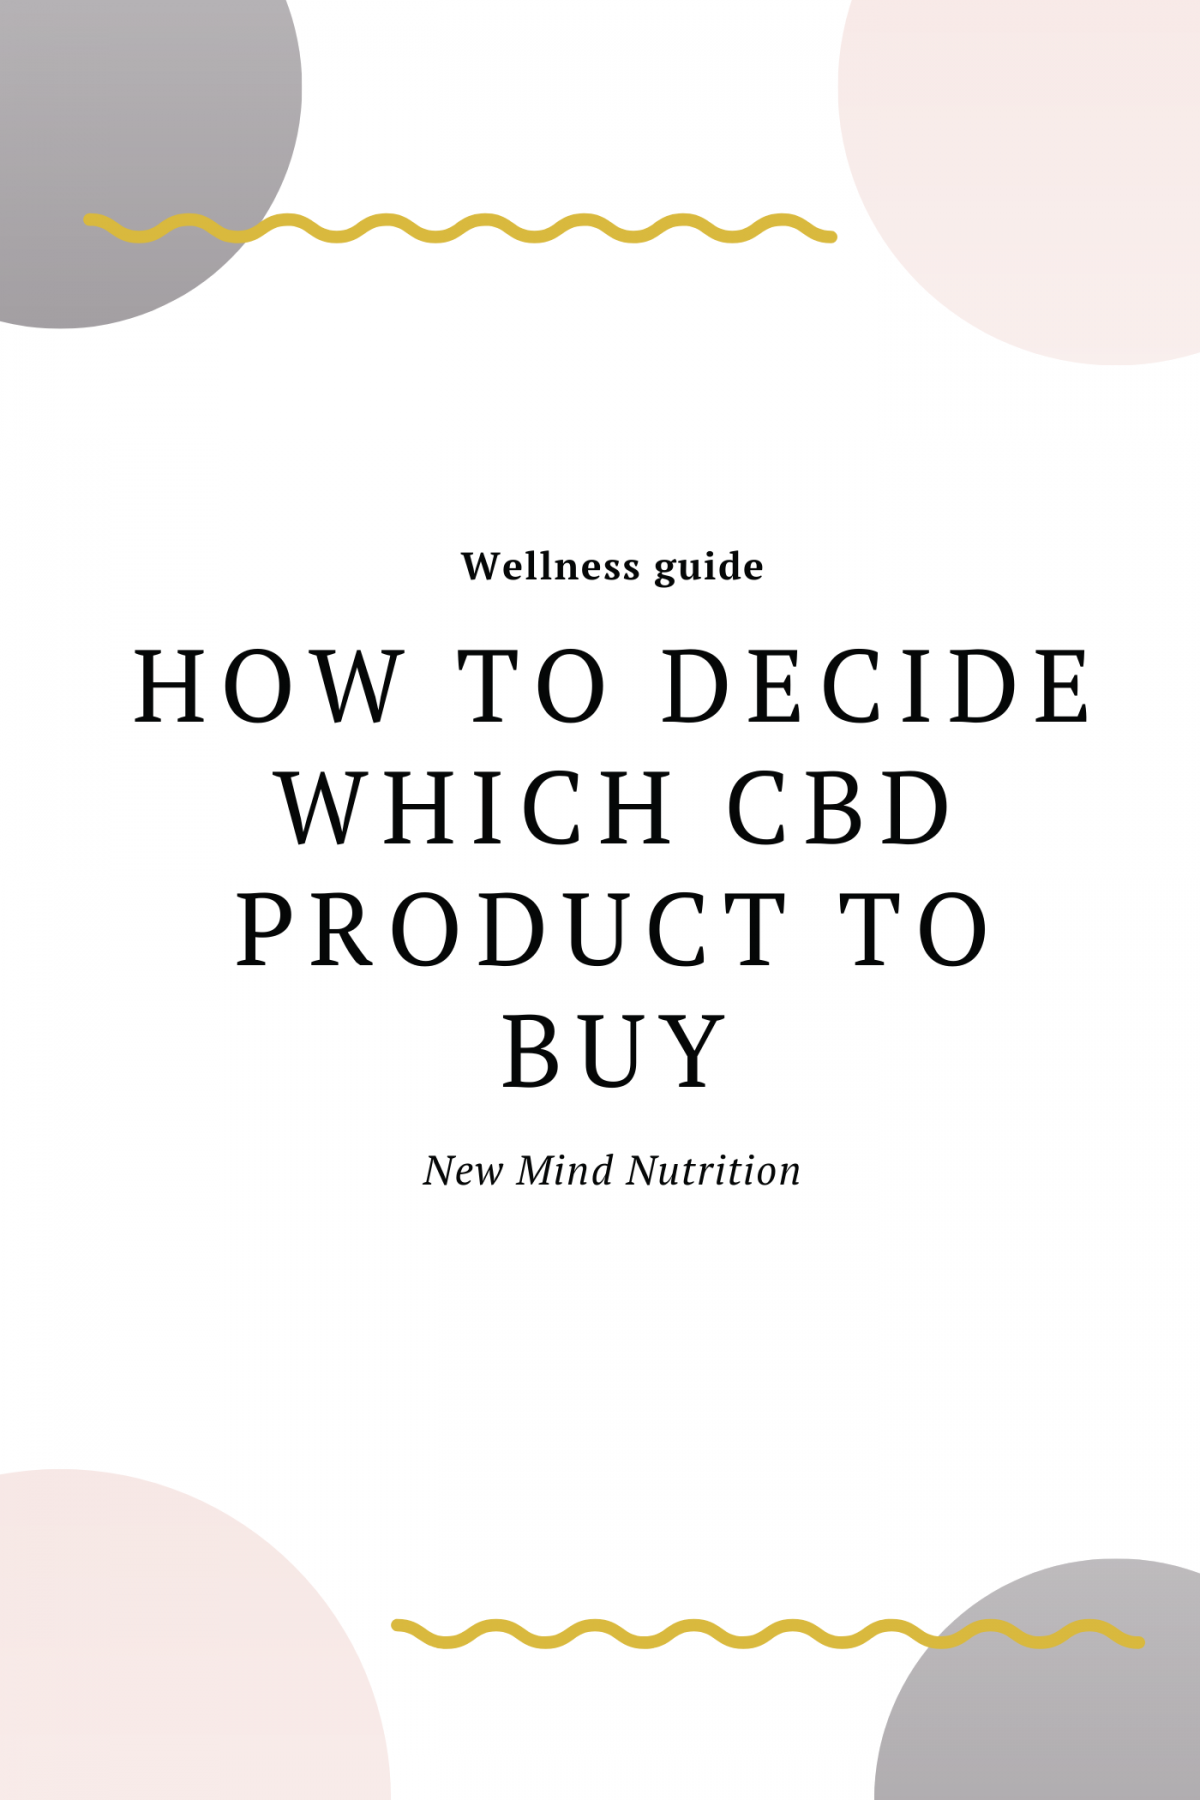 How to choose which CBD product to buy